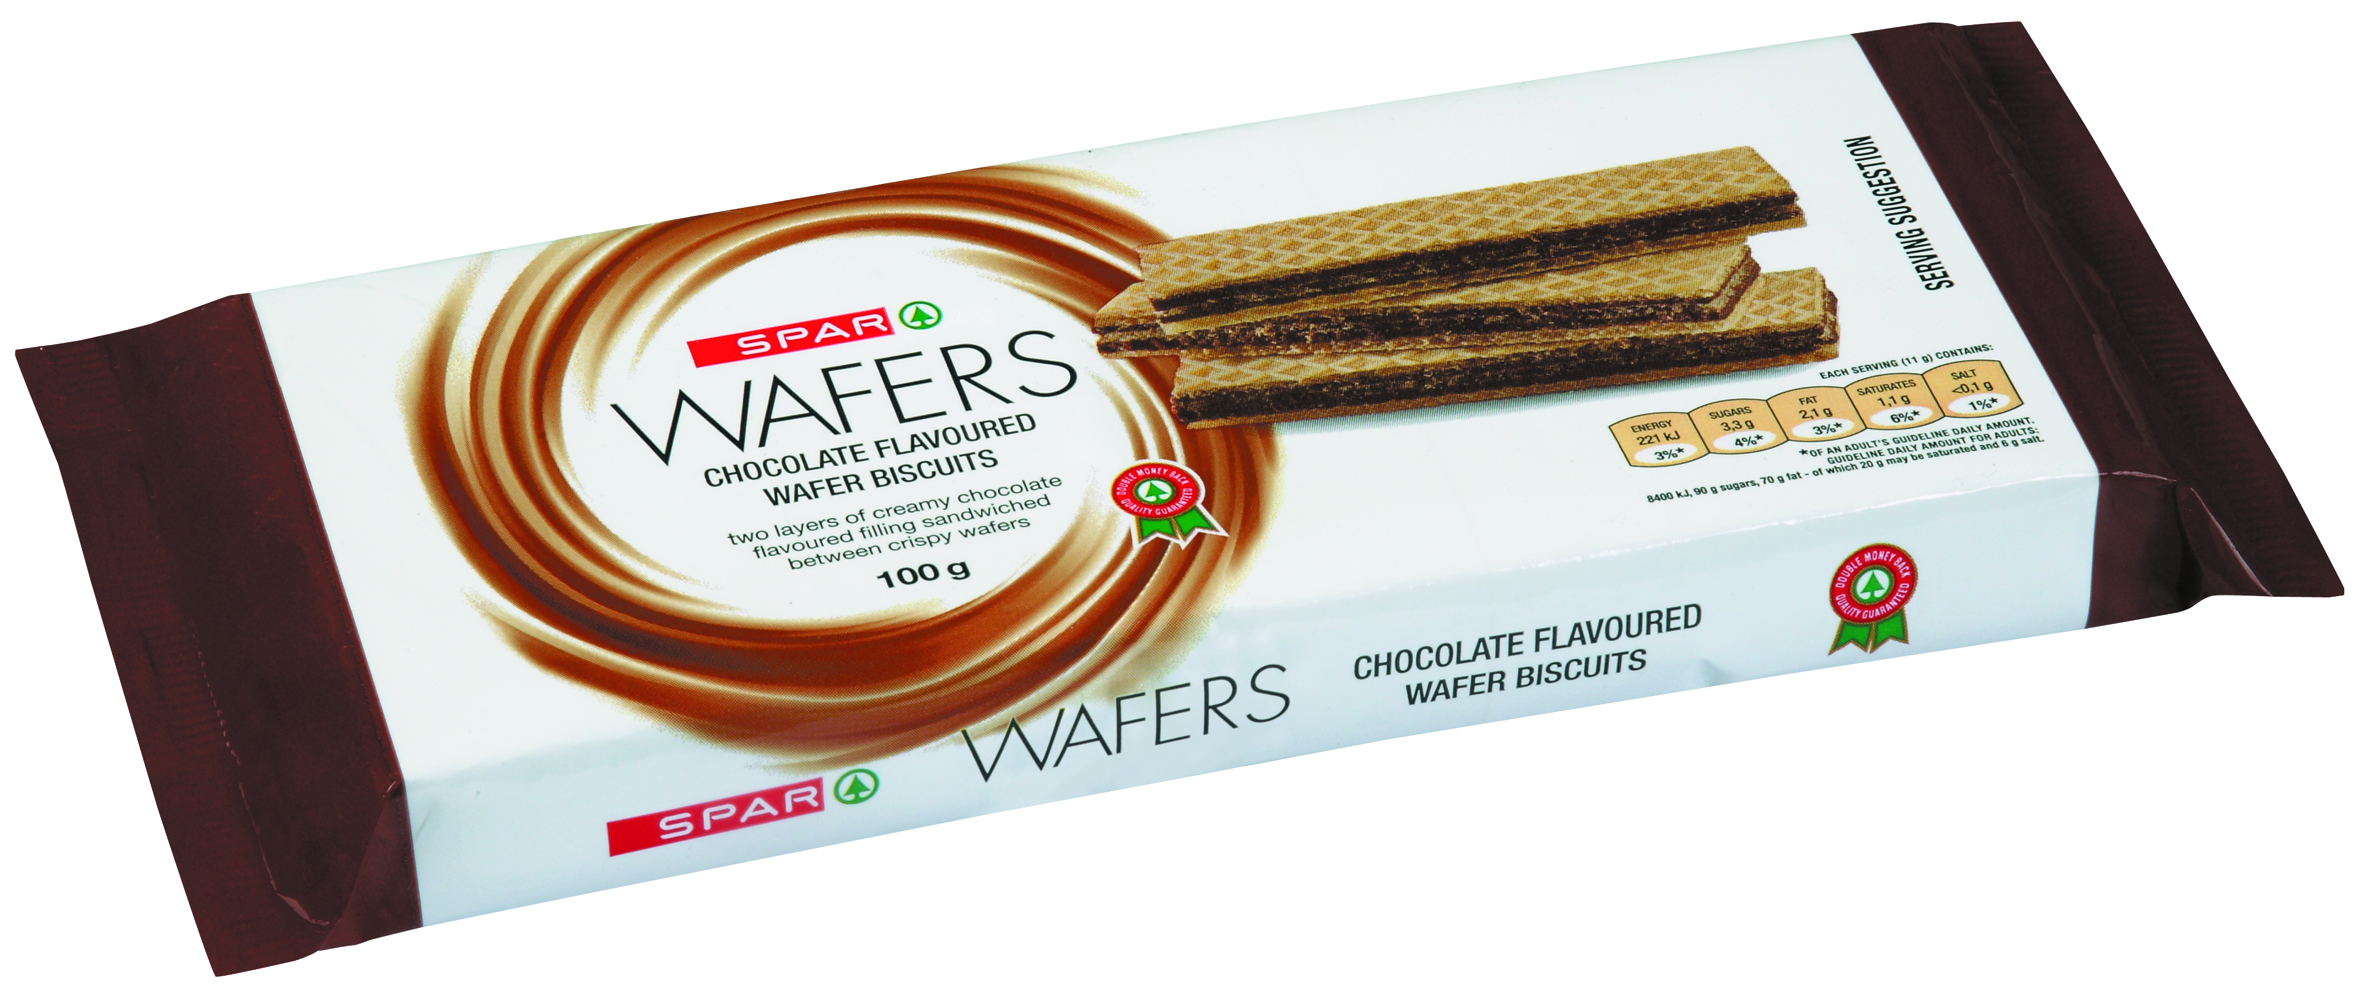 wafer biscuits - chocolate flavoured